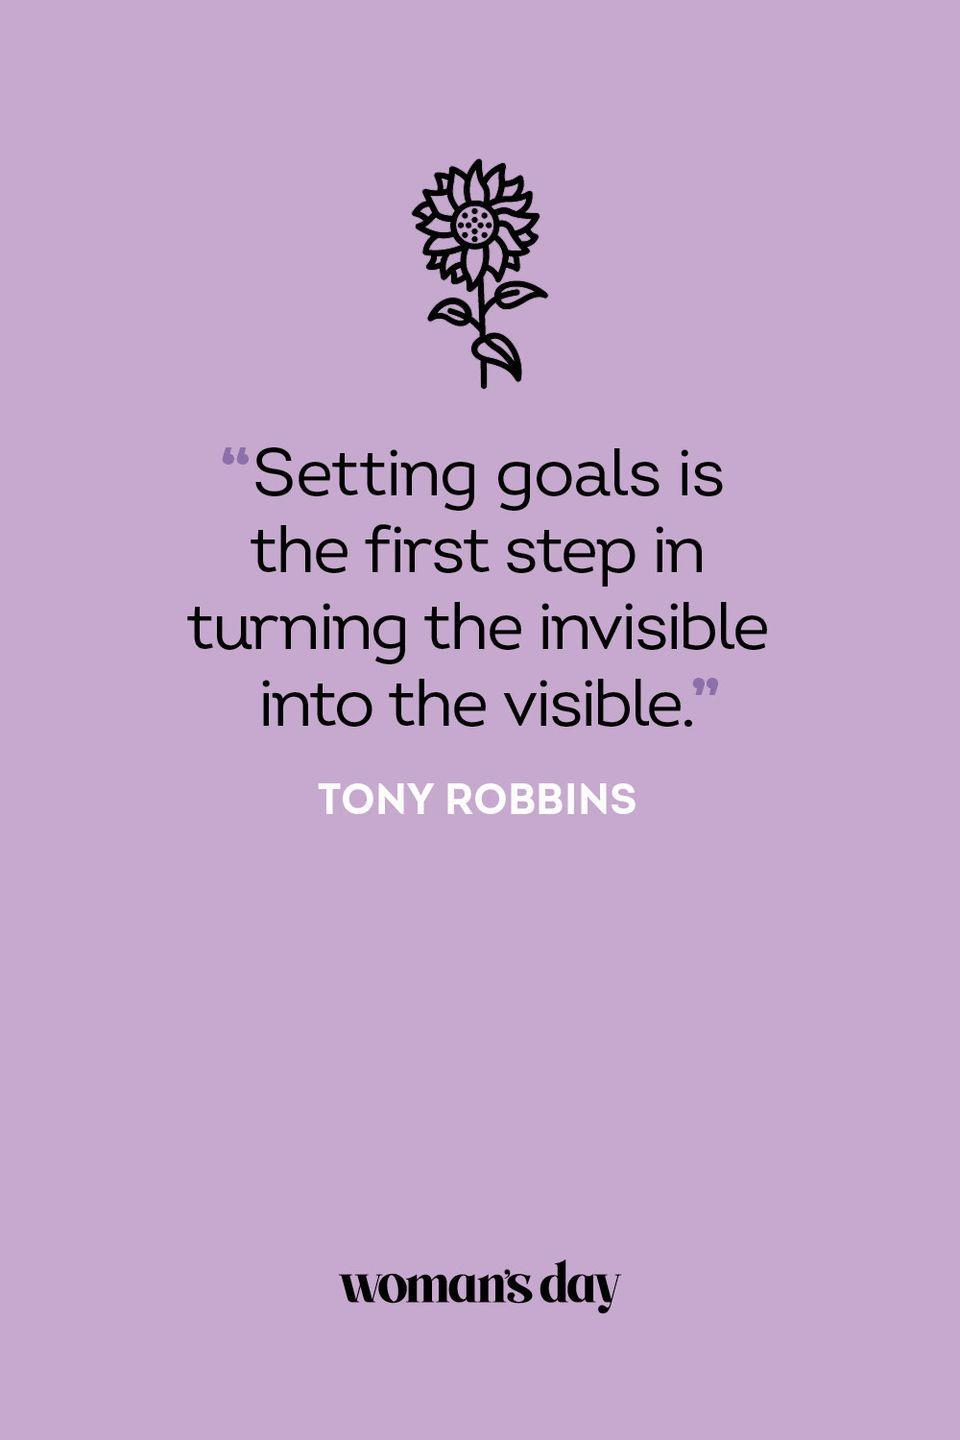 <p>Setting goals is the first step in turning the invisible into the visible. </p>